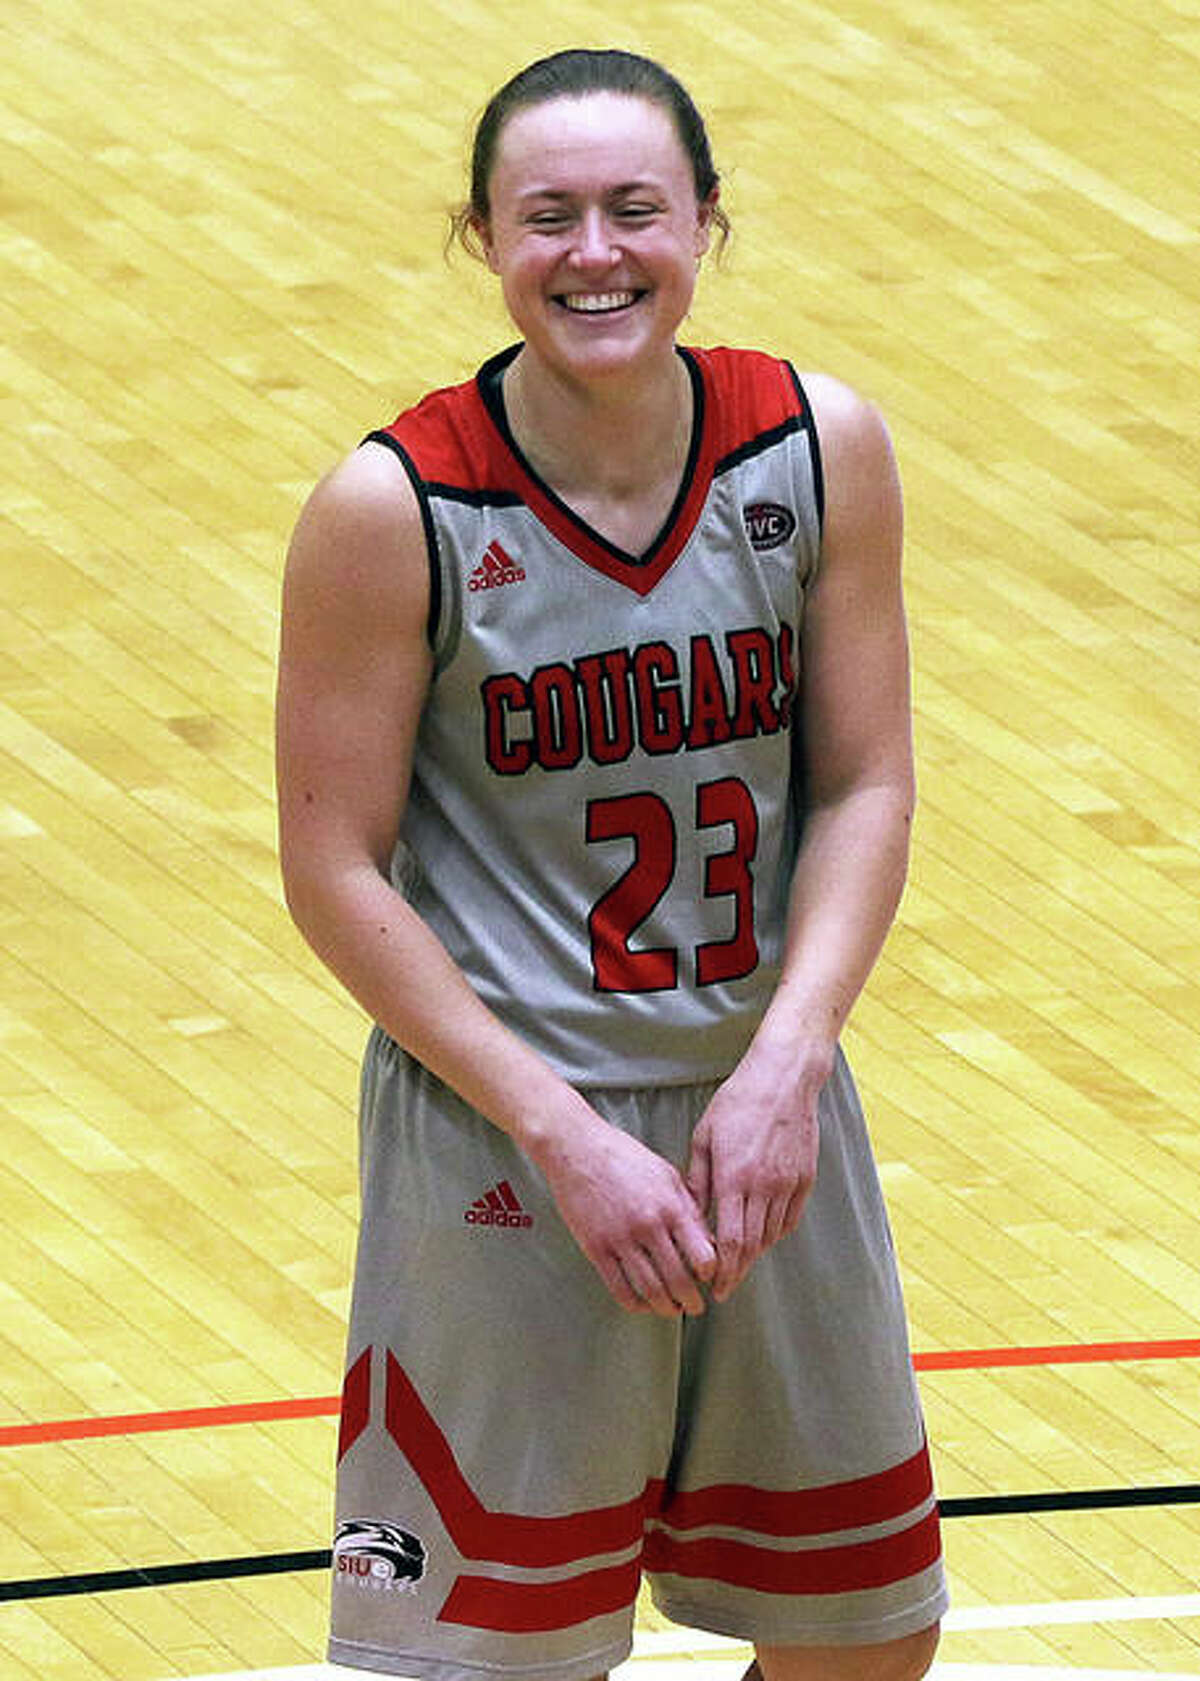 SIUE's Allie Troeckler, a three-time Telegraph Player of the Year for the Civic Memorial Eagles, will accept a fifth-year of eligibility and return to the Cougars for the 2021-22 women's basketball season.